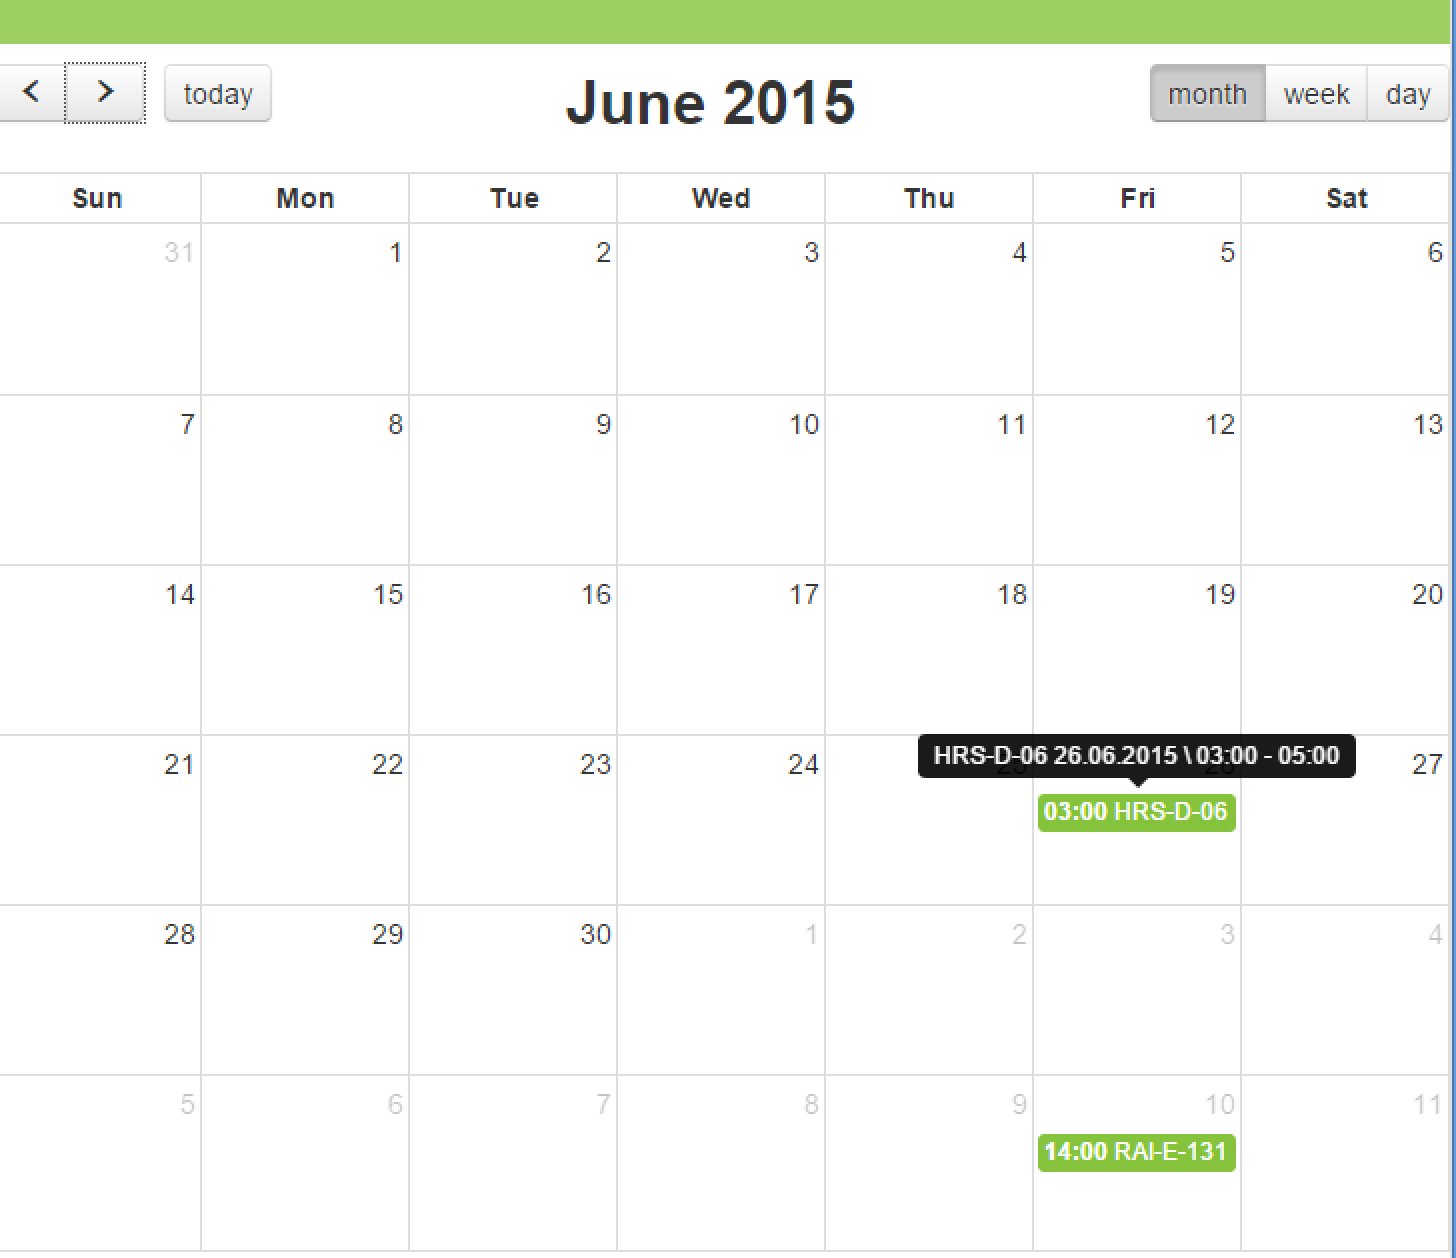 Quick XPages tip: add Fullcalendar plugin to your